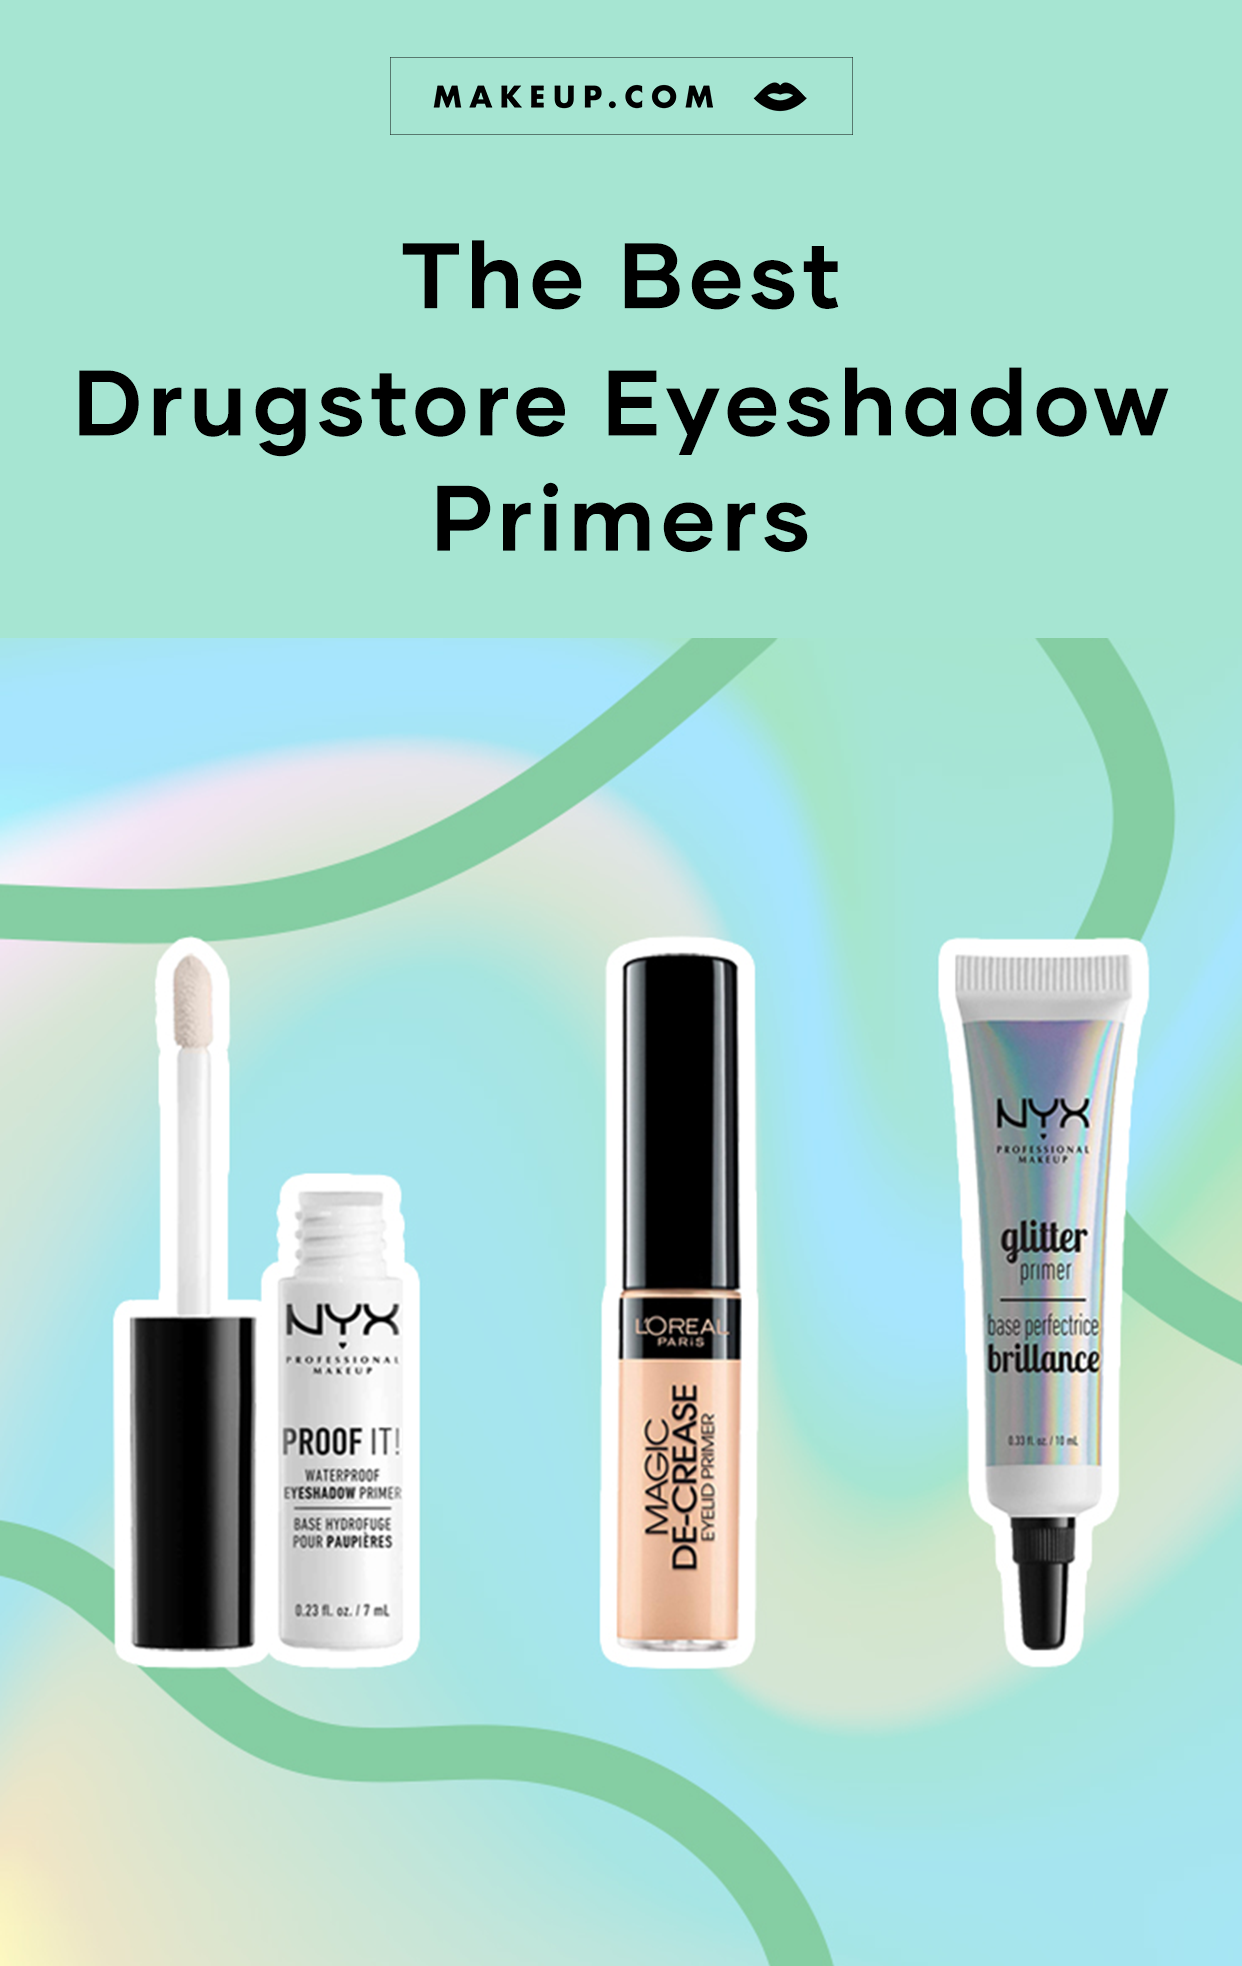 Eyeshadow primer is the key to preventing eyeshadow from